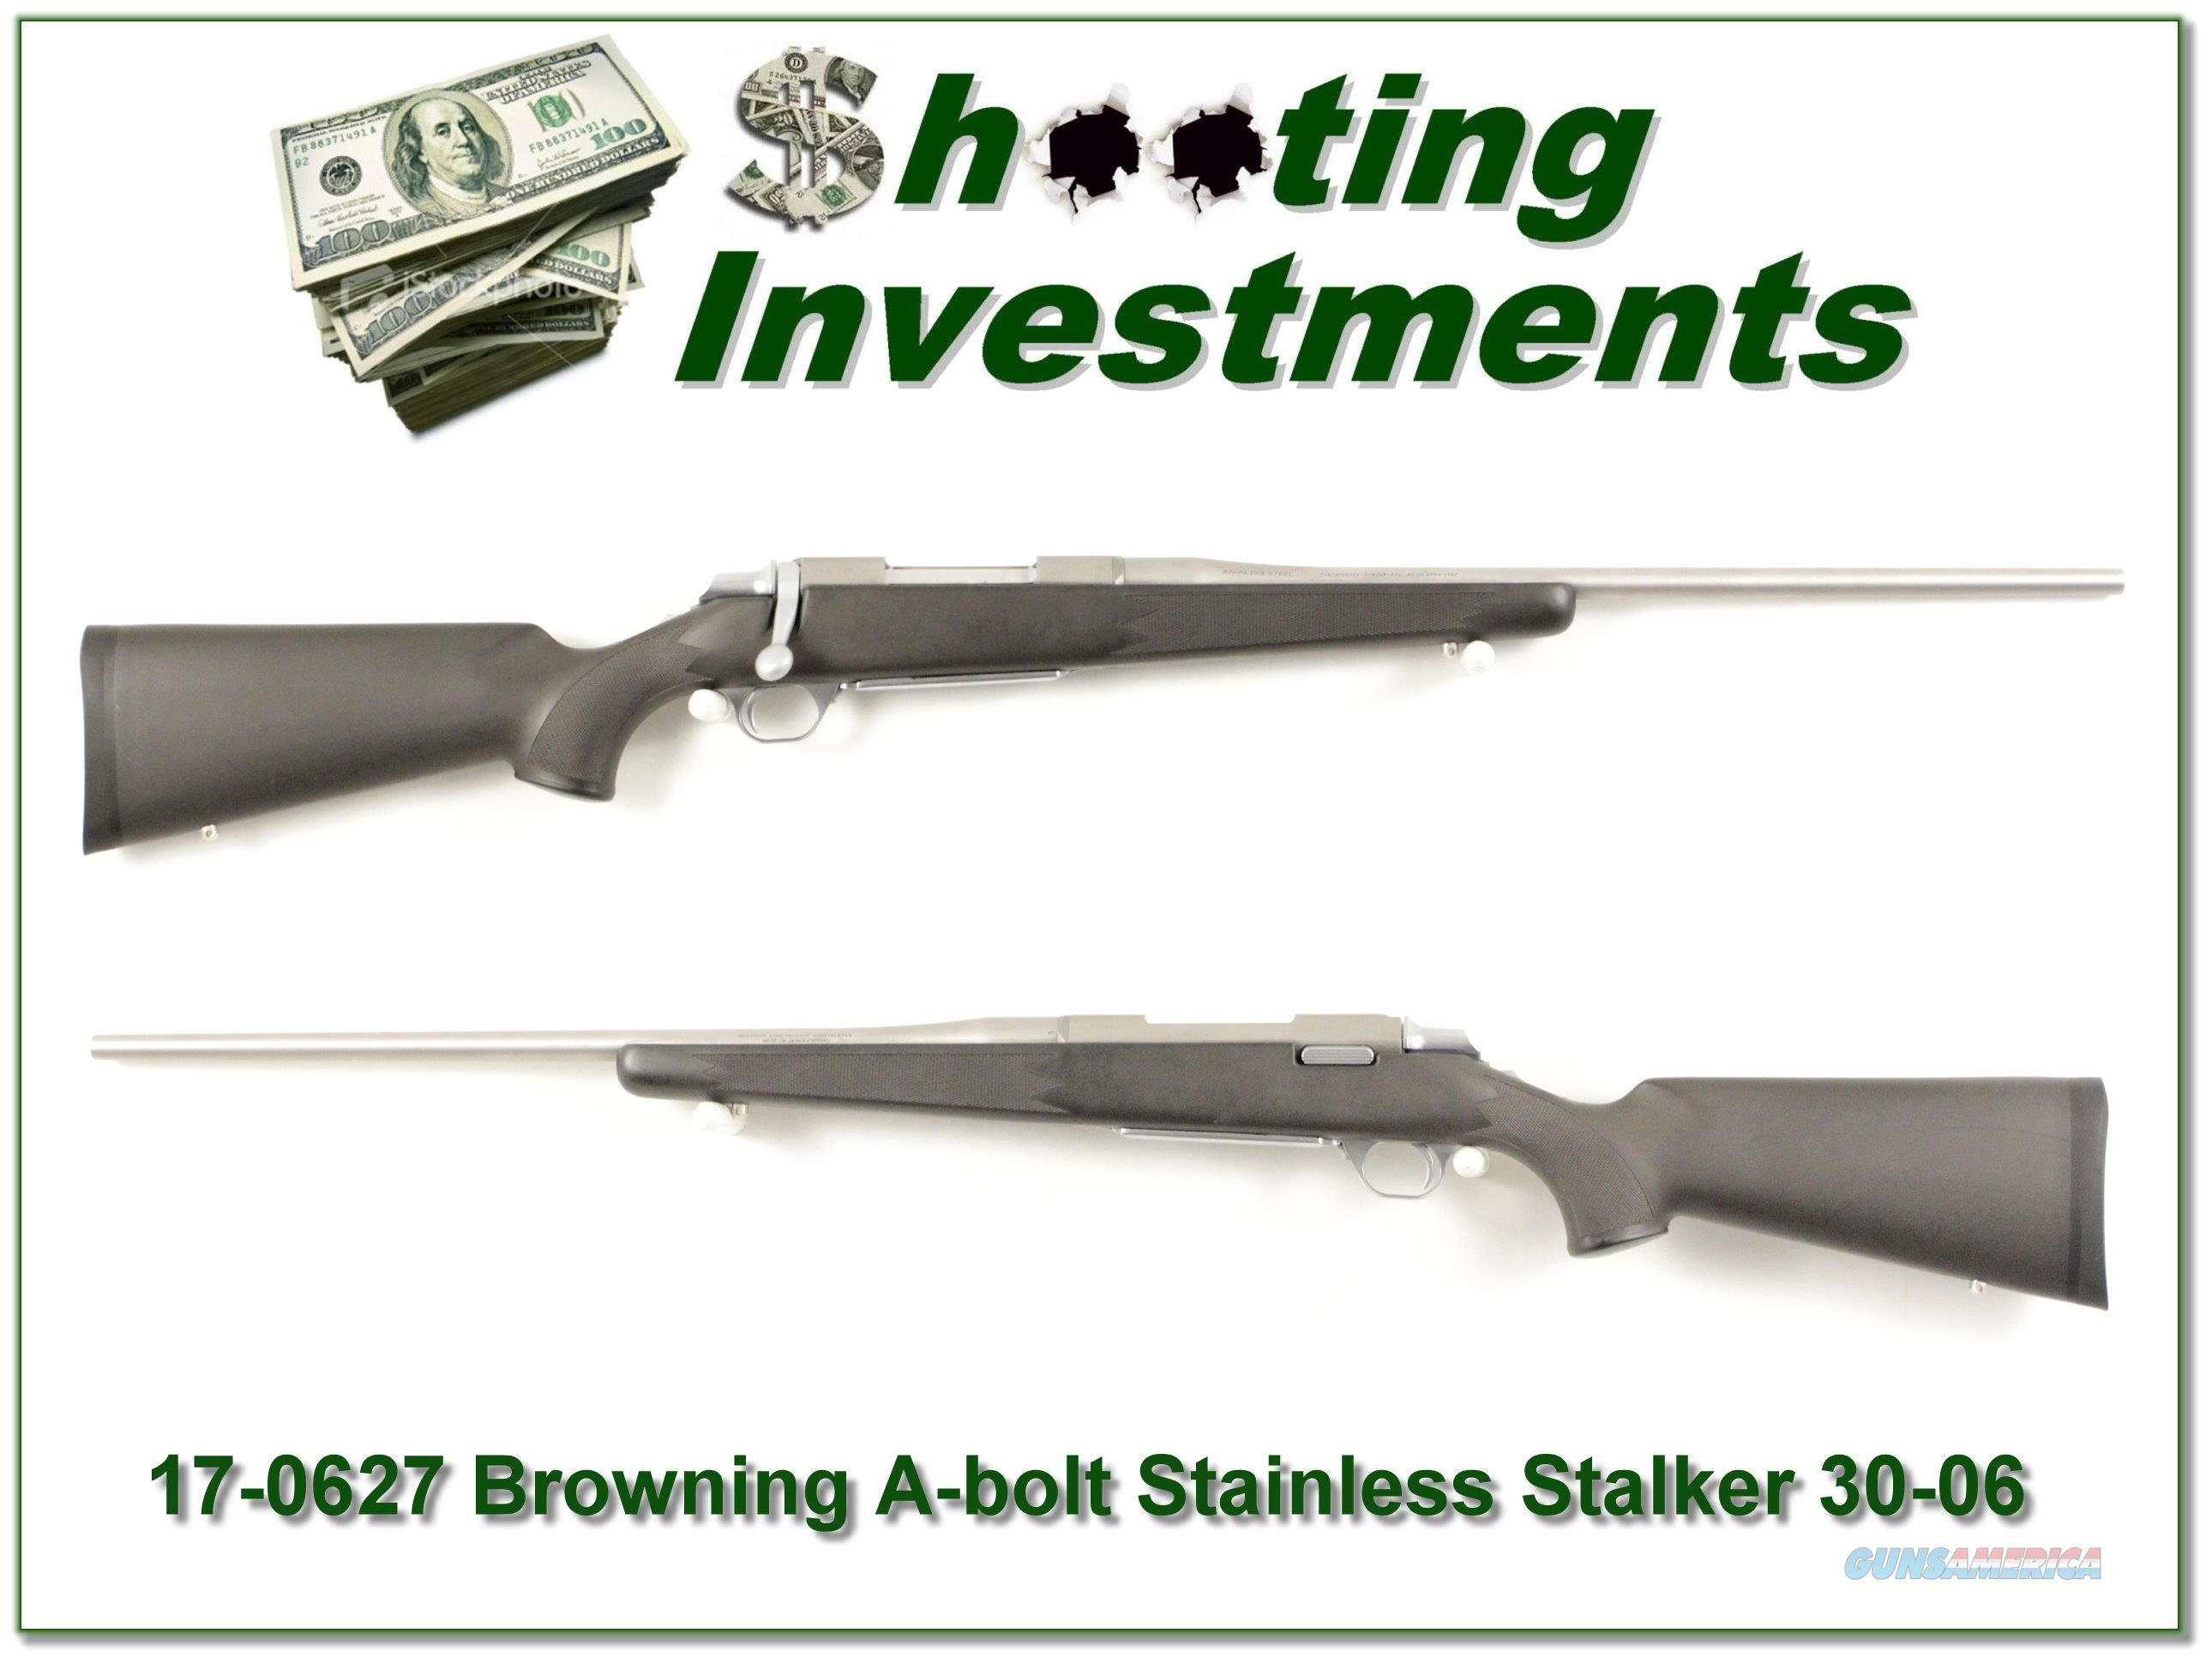 Browning A-bolt II Stainless Stalker 30-06 like new!  Guns > Rifles > Browning Rifles > Bolt Action > Hunting > Stainless